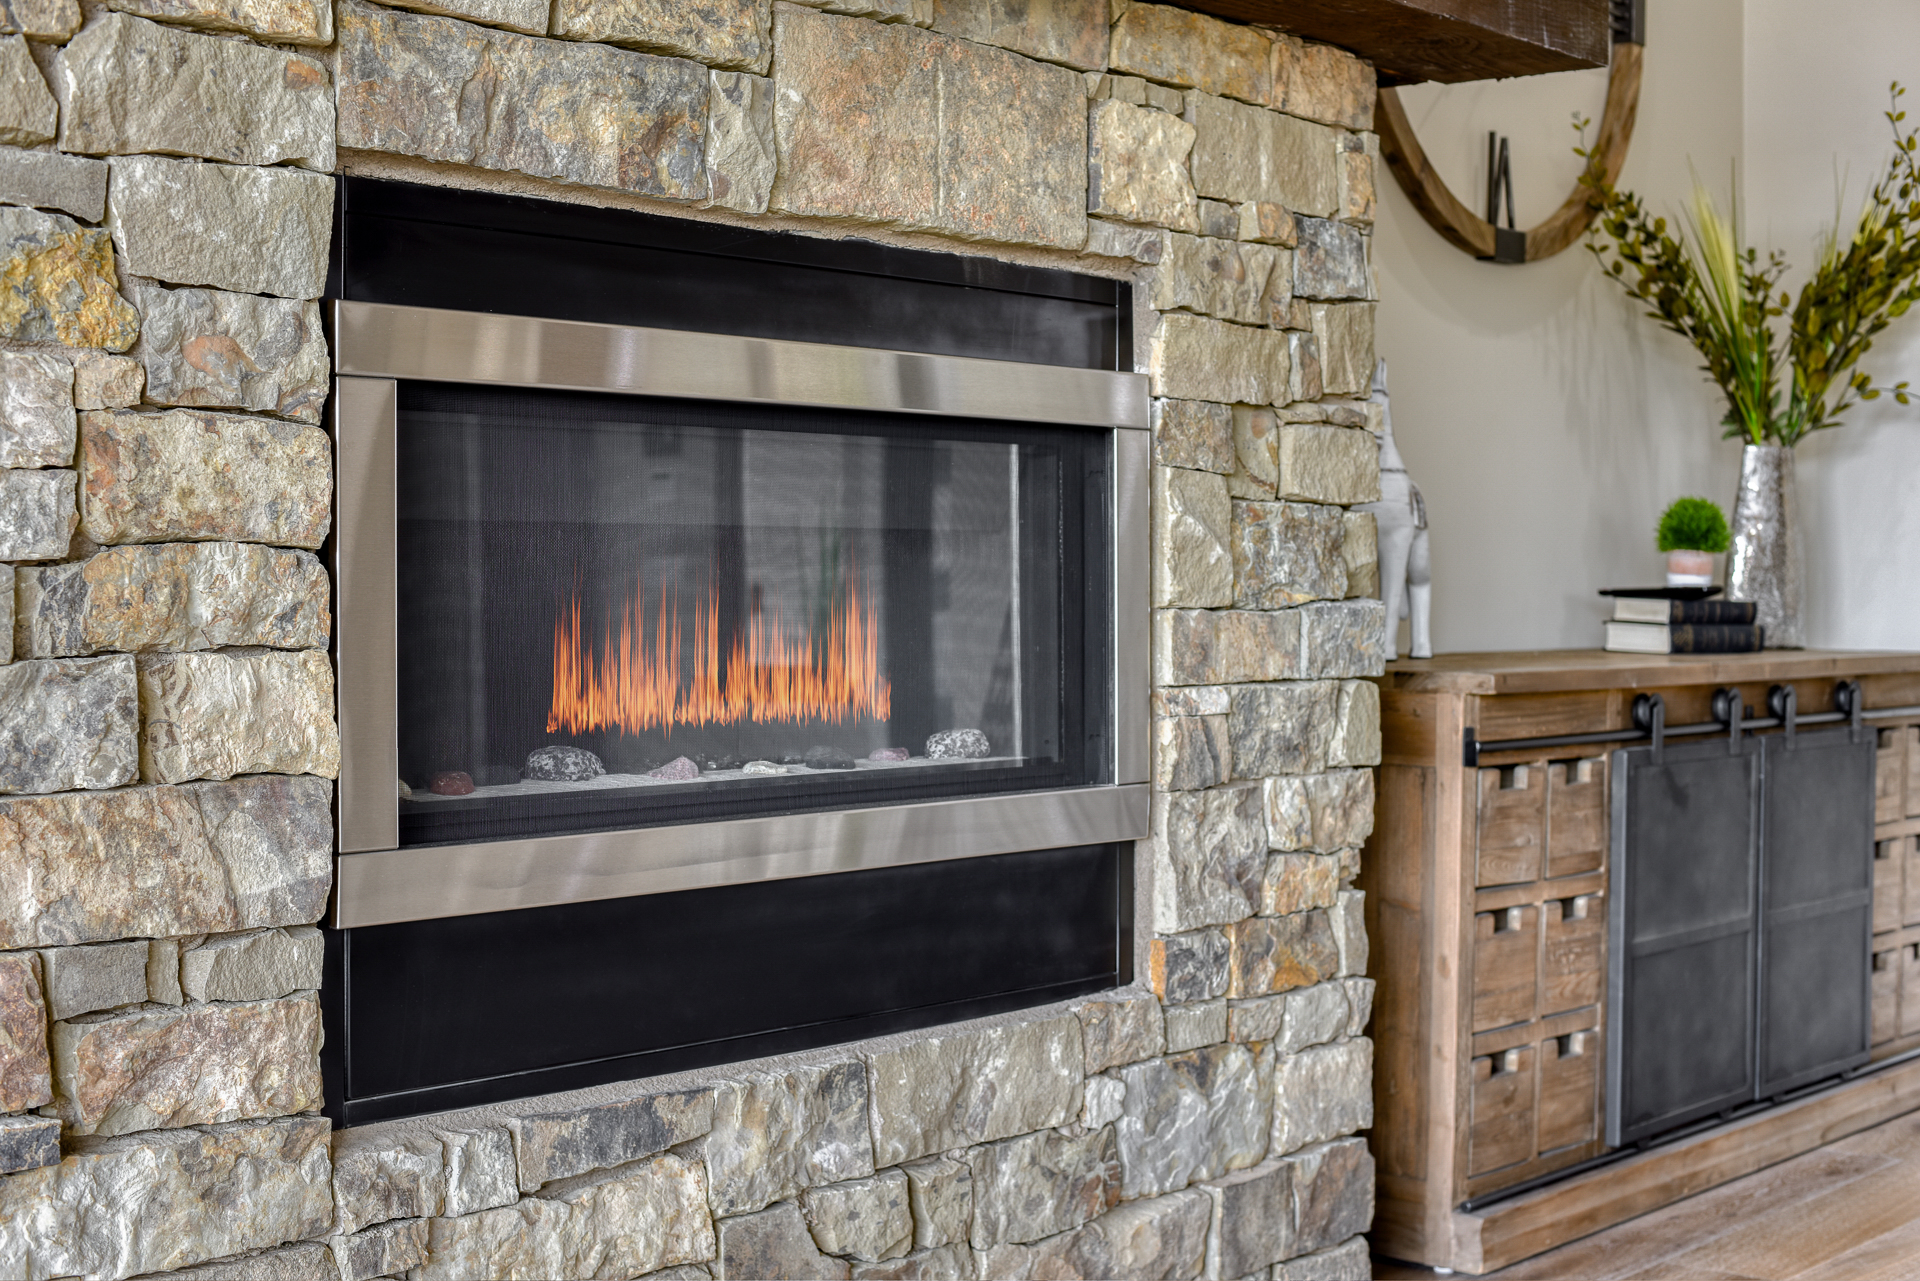 Fireplace in new Northern Arizona home